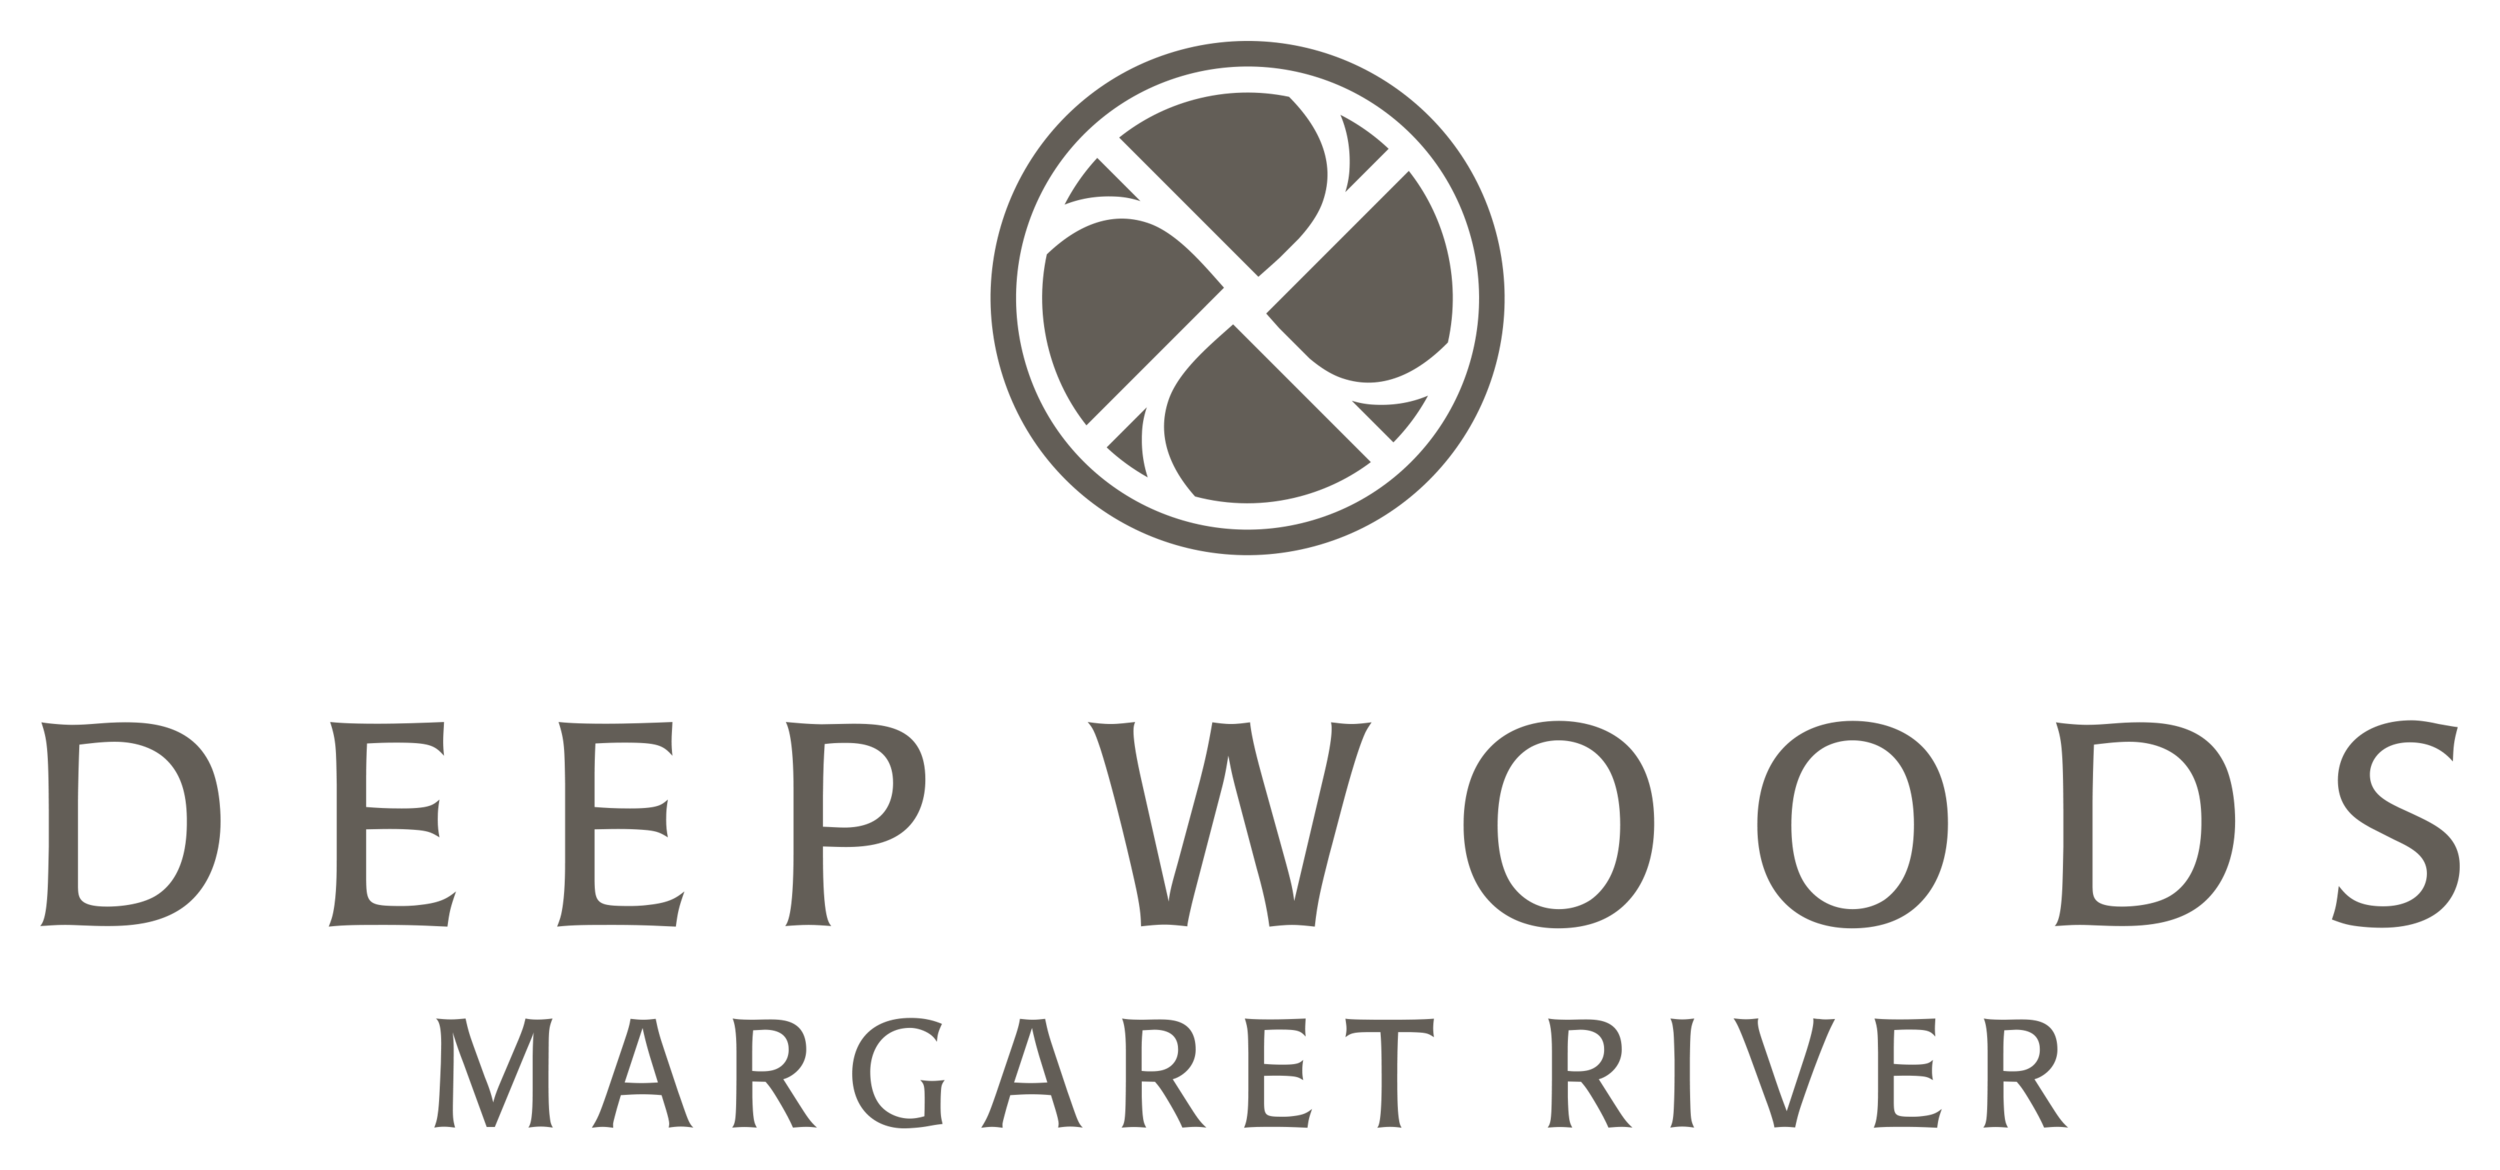 Deep Woods Margaret River Logo.png